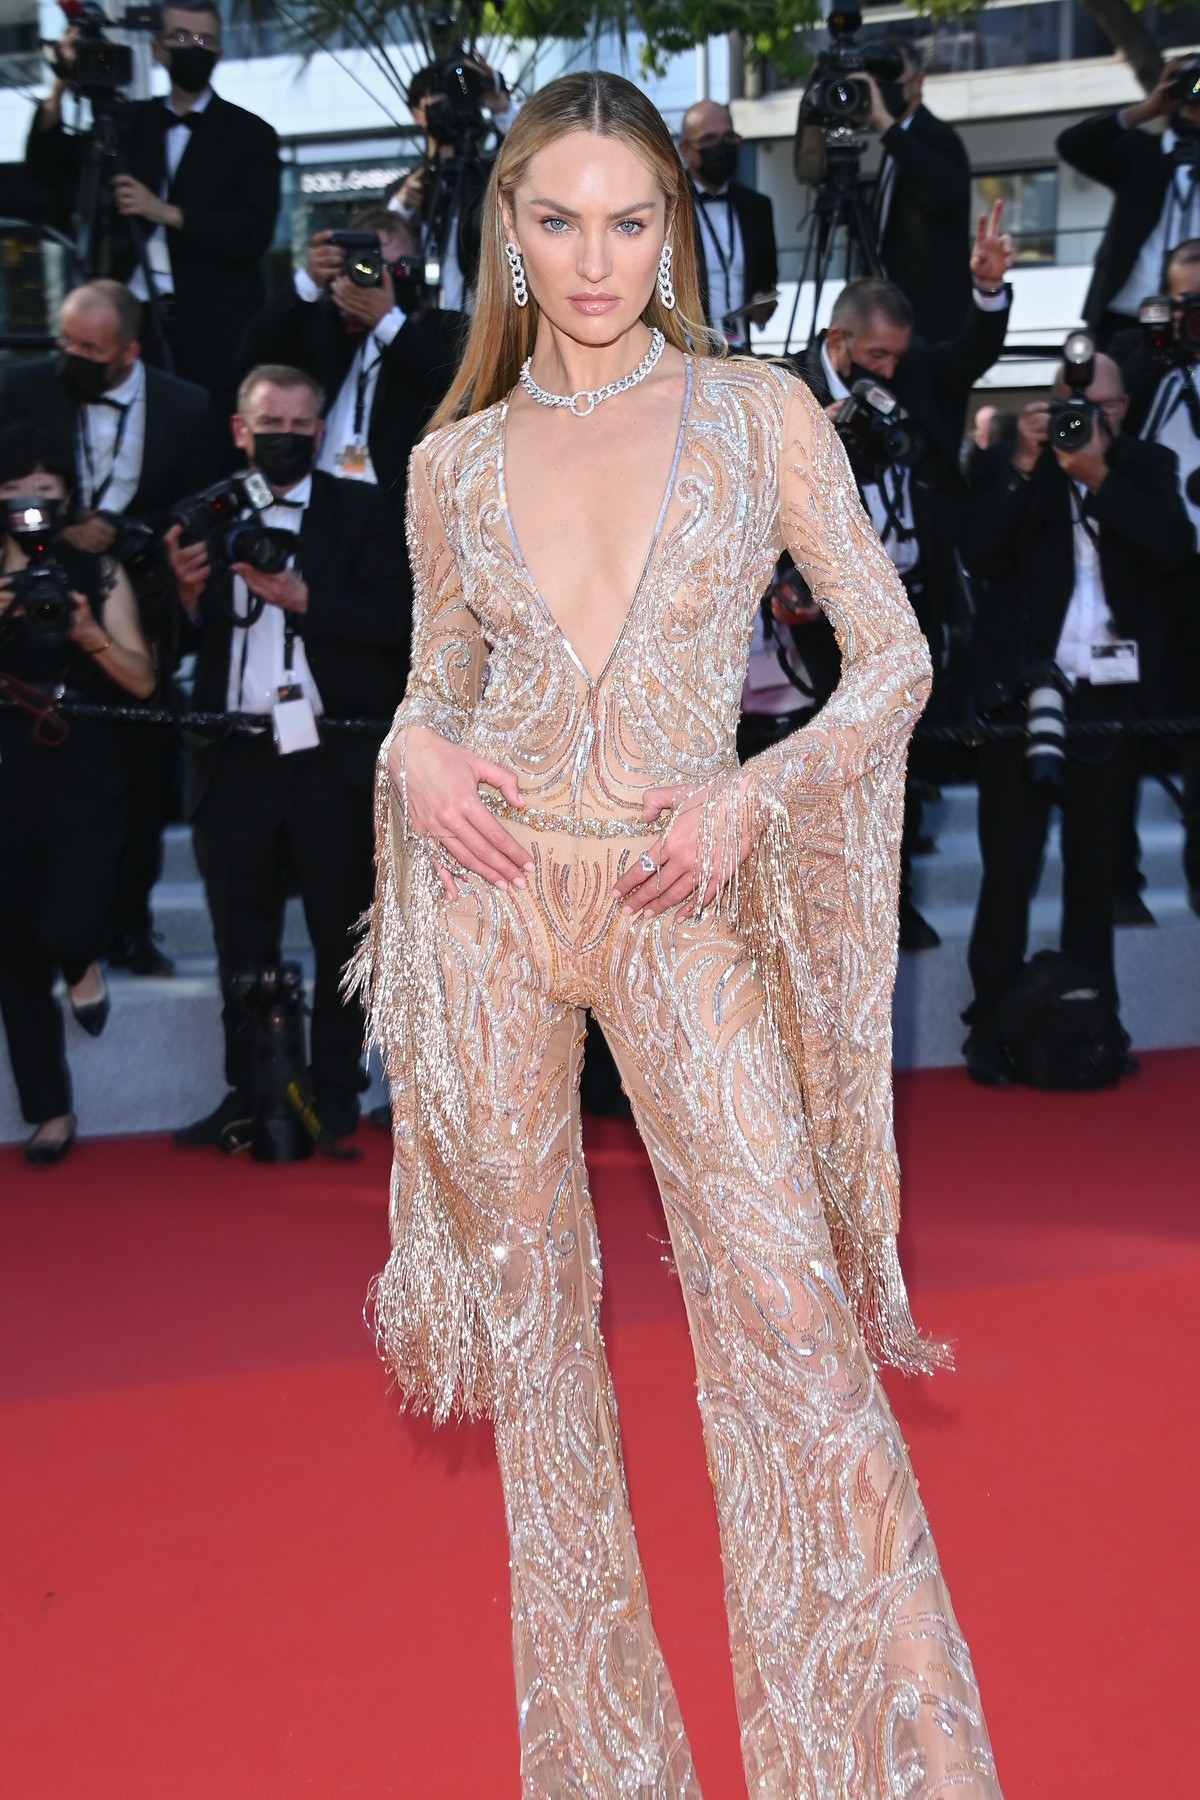 """CANNES, FRANCE - JULY 06: Candice Swanepoel attends the """"Annette"""" screening and opening ceremony during the 74th annual Cannes Film Festival on July 06, 2021 in Cannes, France. (Photo by Daniele Venturelli/WireImage)"""